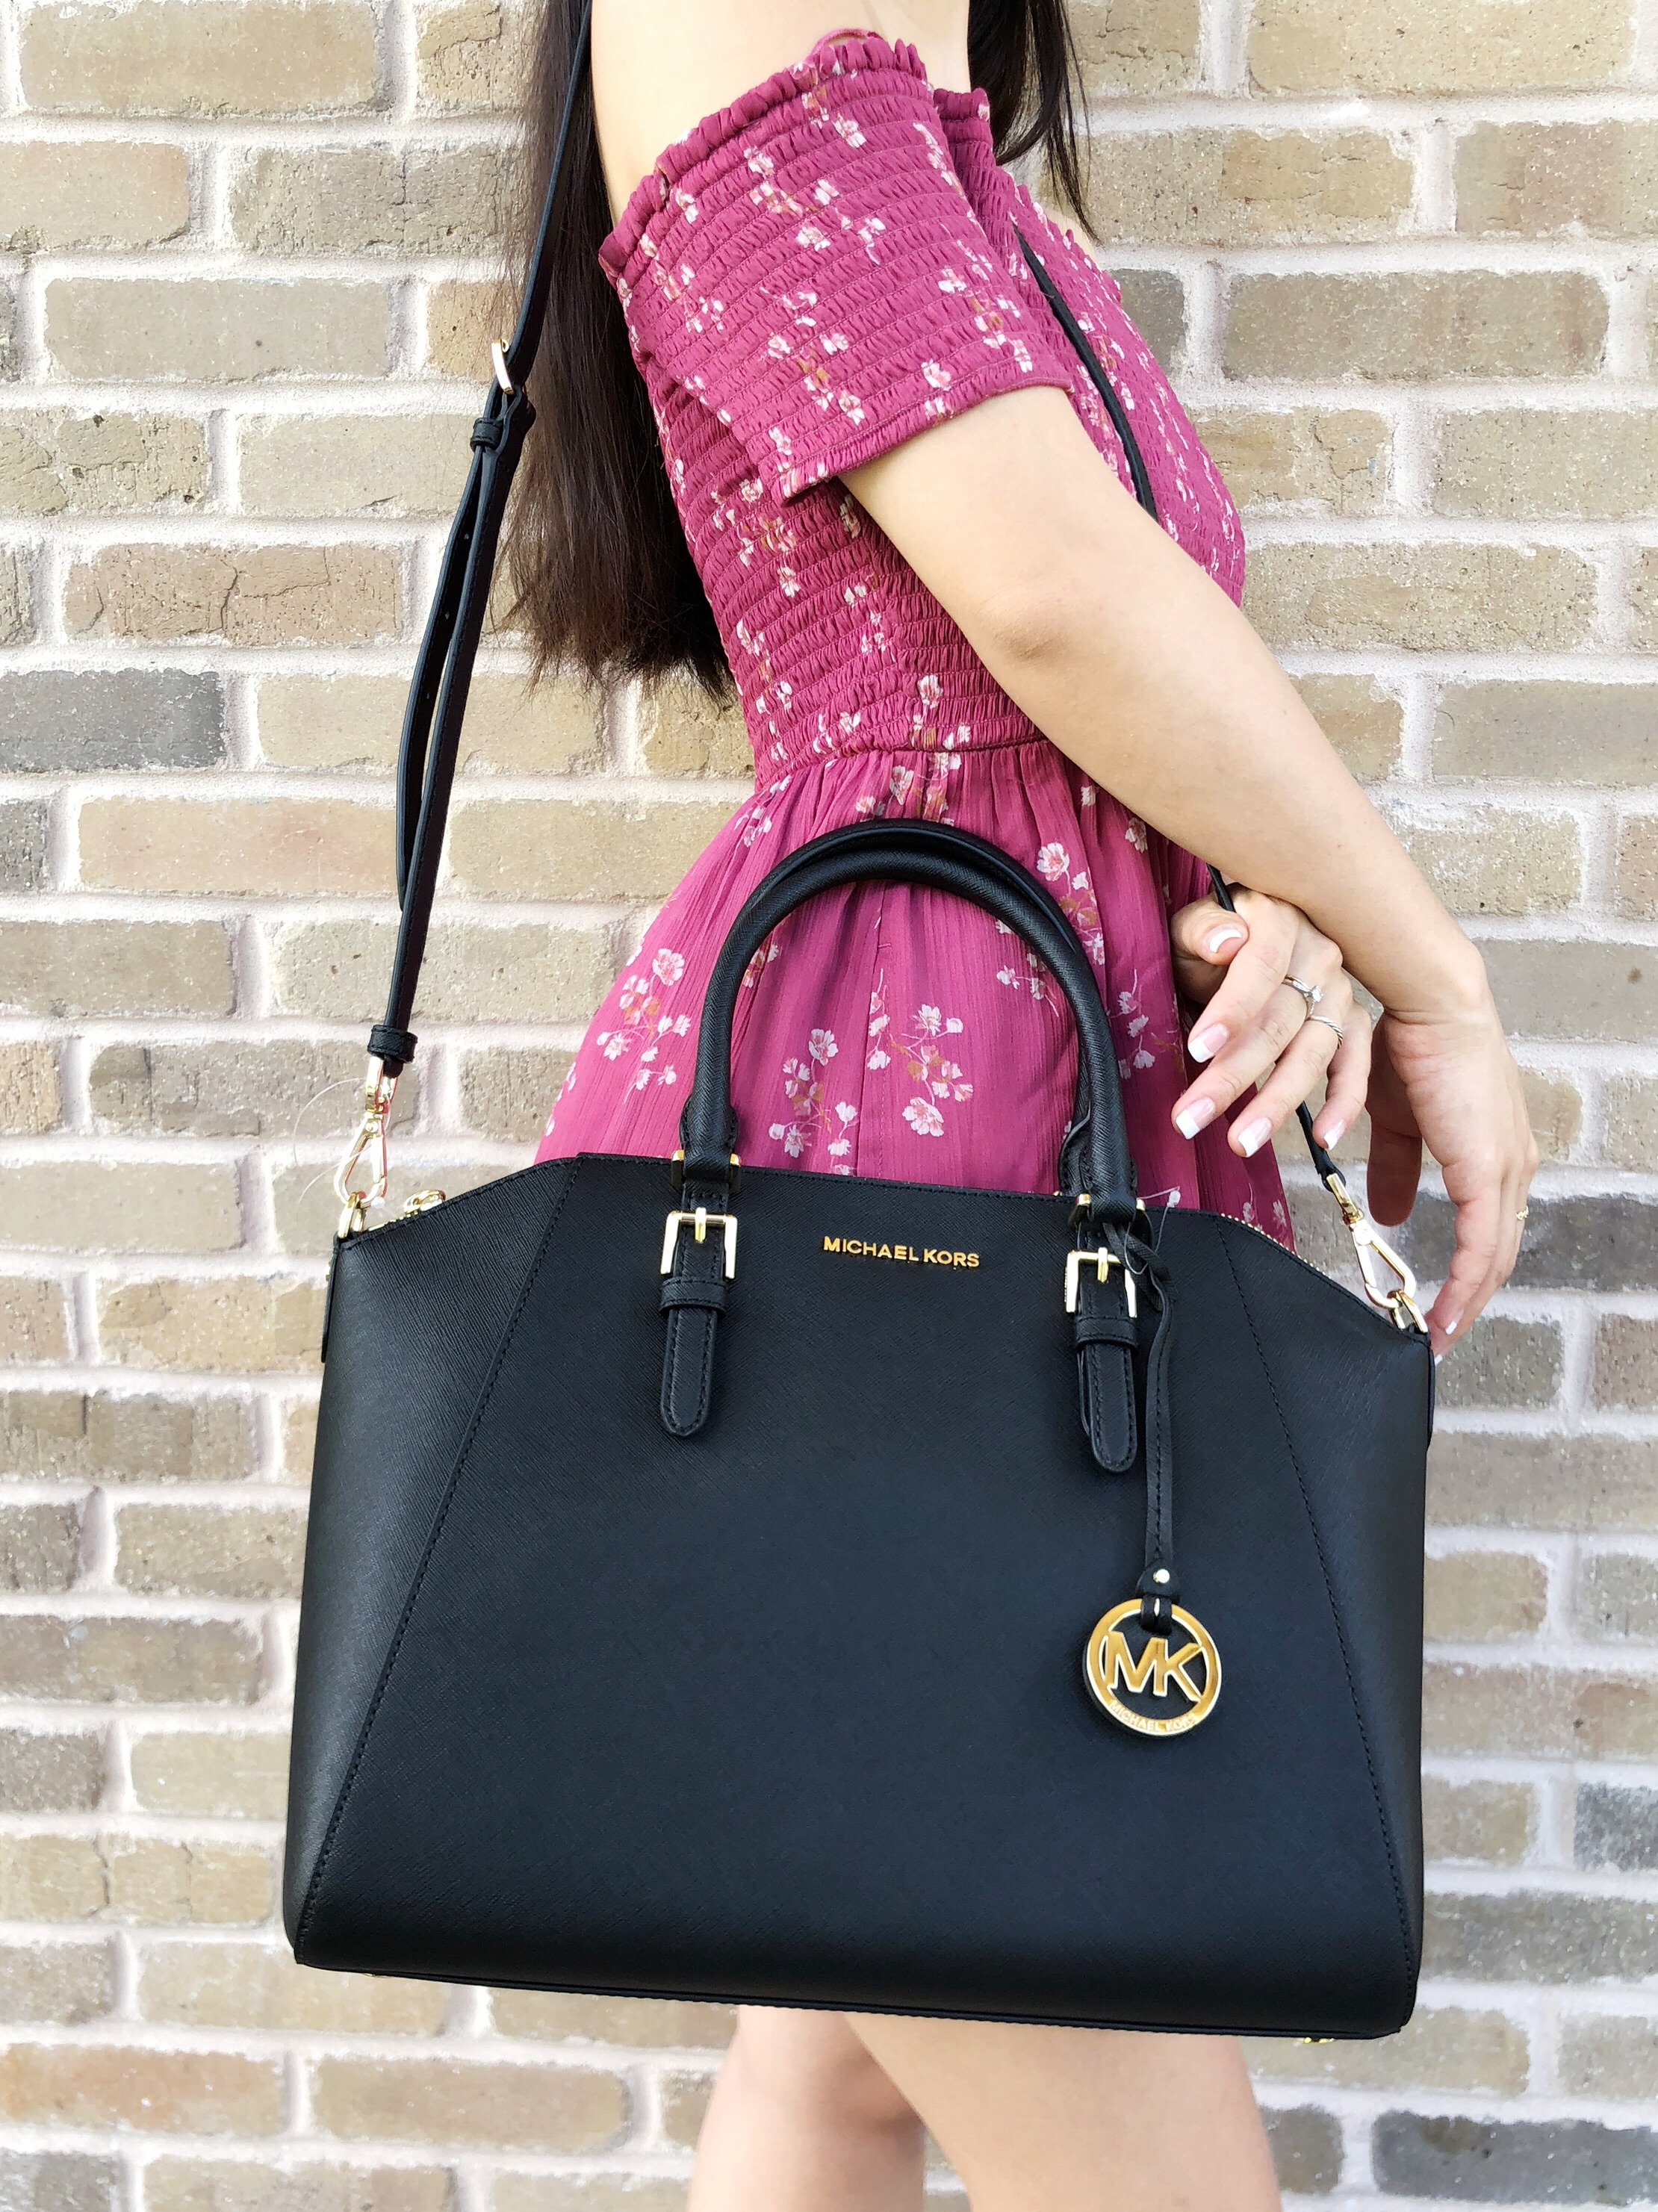 1bfebf23842f Michael Kors - Michael Kors Large Ciara Top Zip Satchel Black Saffiano  Leather - Walmart.com